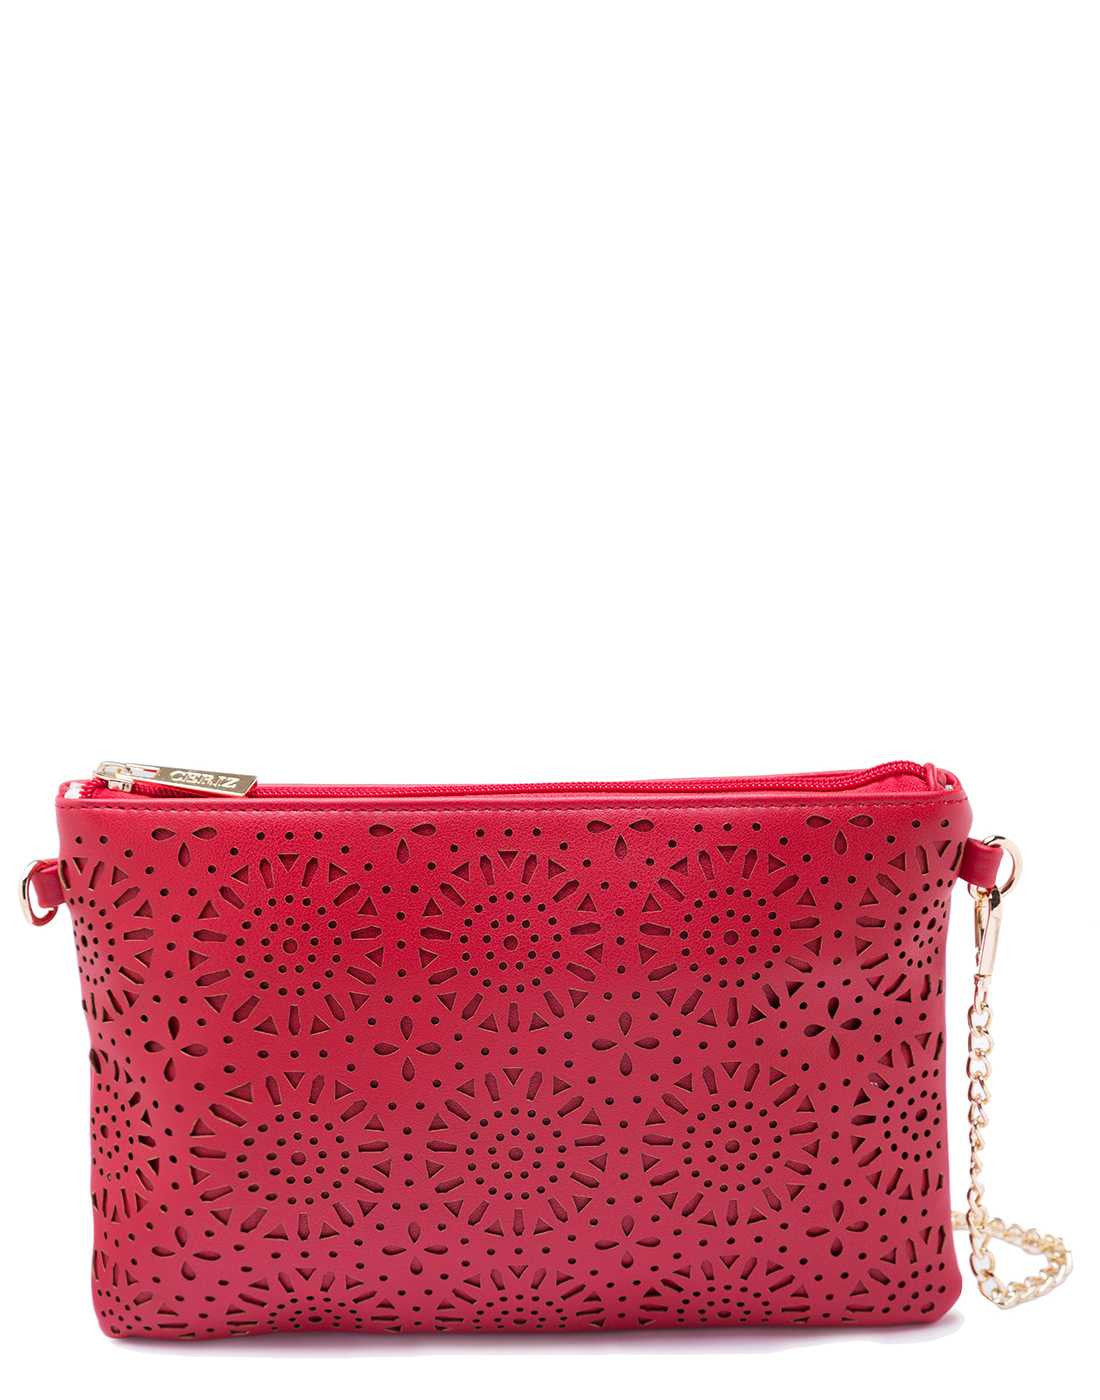 Red Sling Bag with Chain and Laser Cut Design